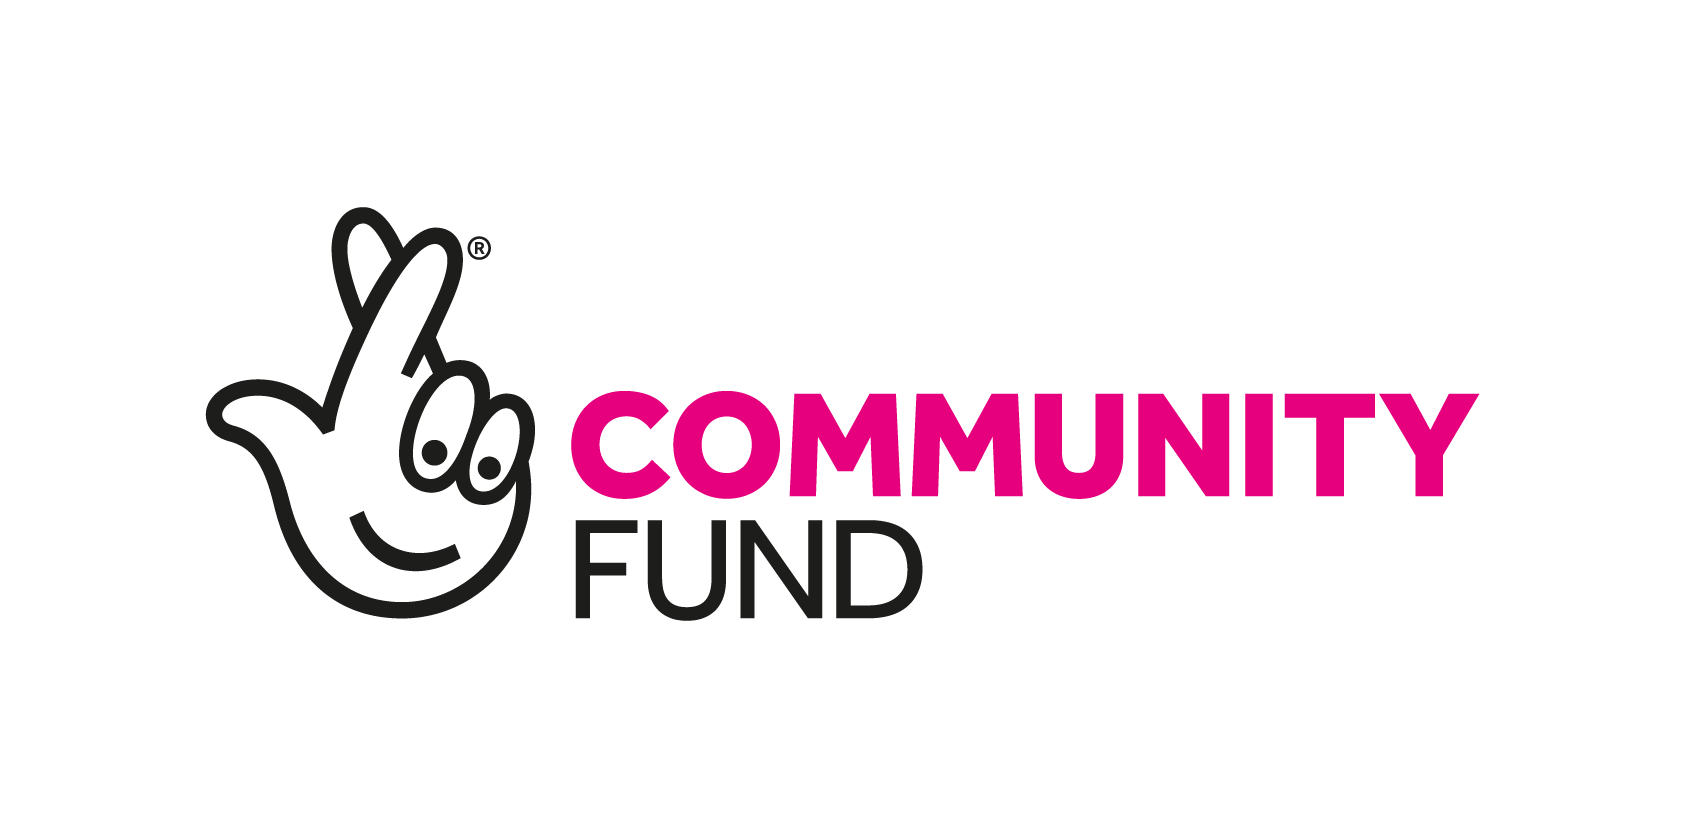 national lottery community fund logo